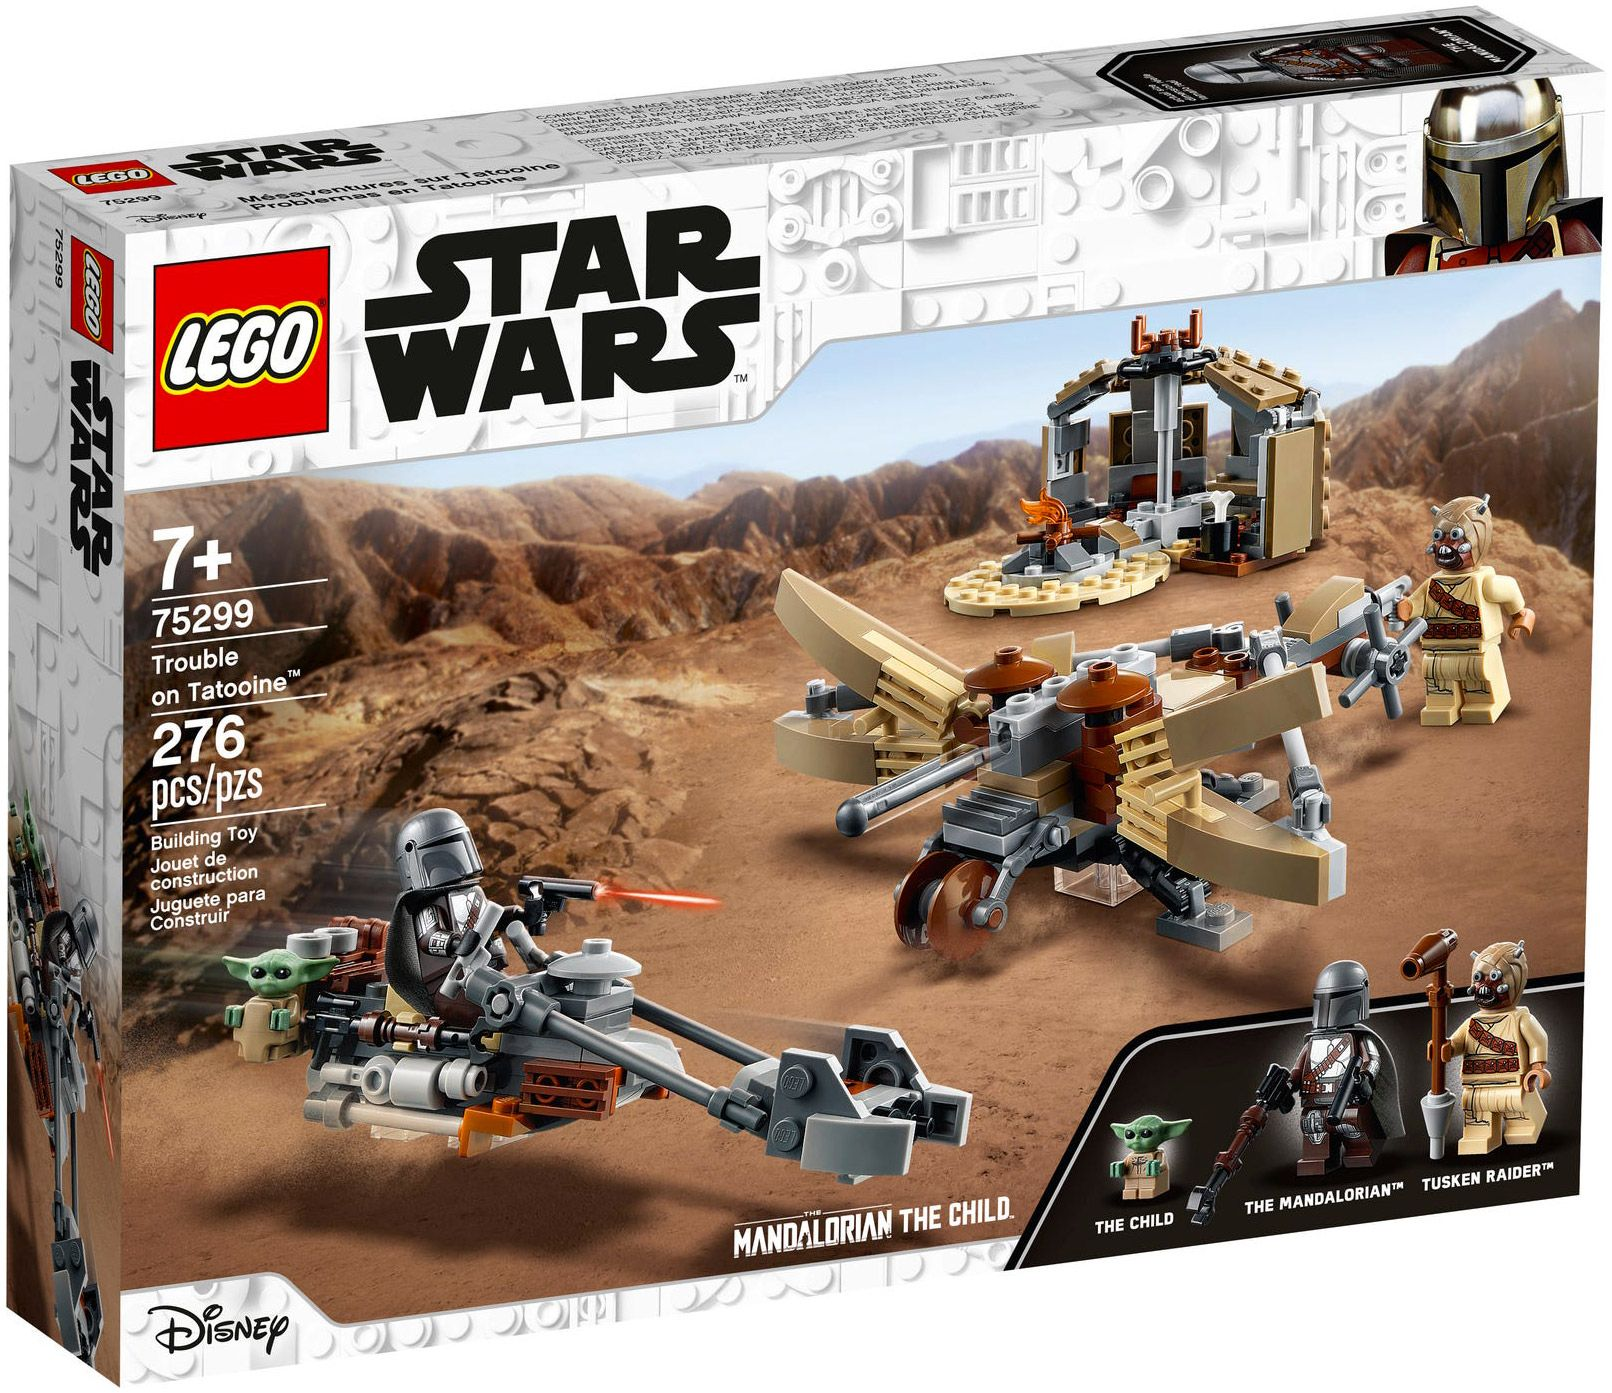 Lego Star Wars 75299 Pas Cher Conflit A Tatooine Lego Star Wars Sets Lego War Lego Star Wars